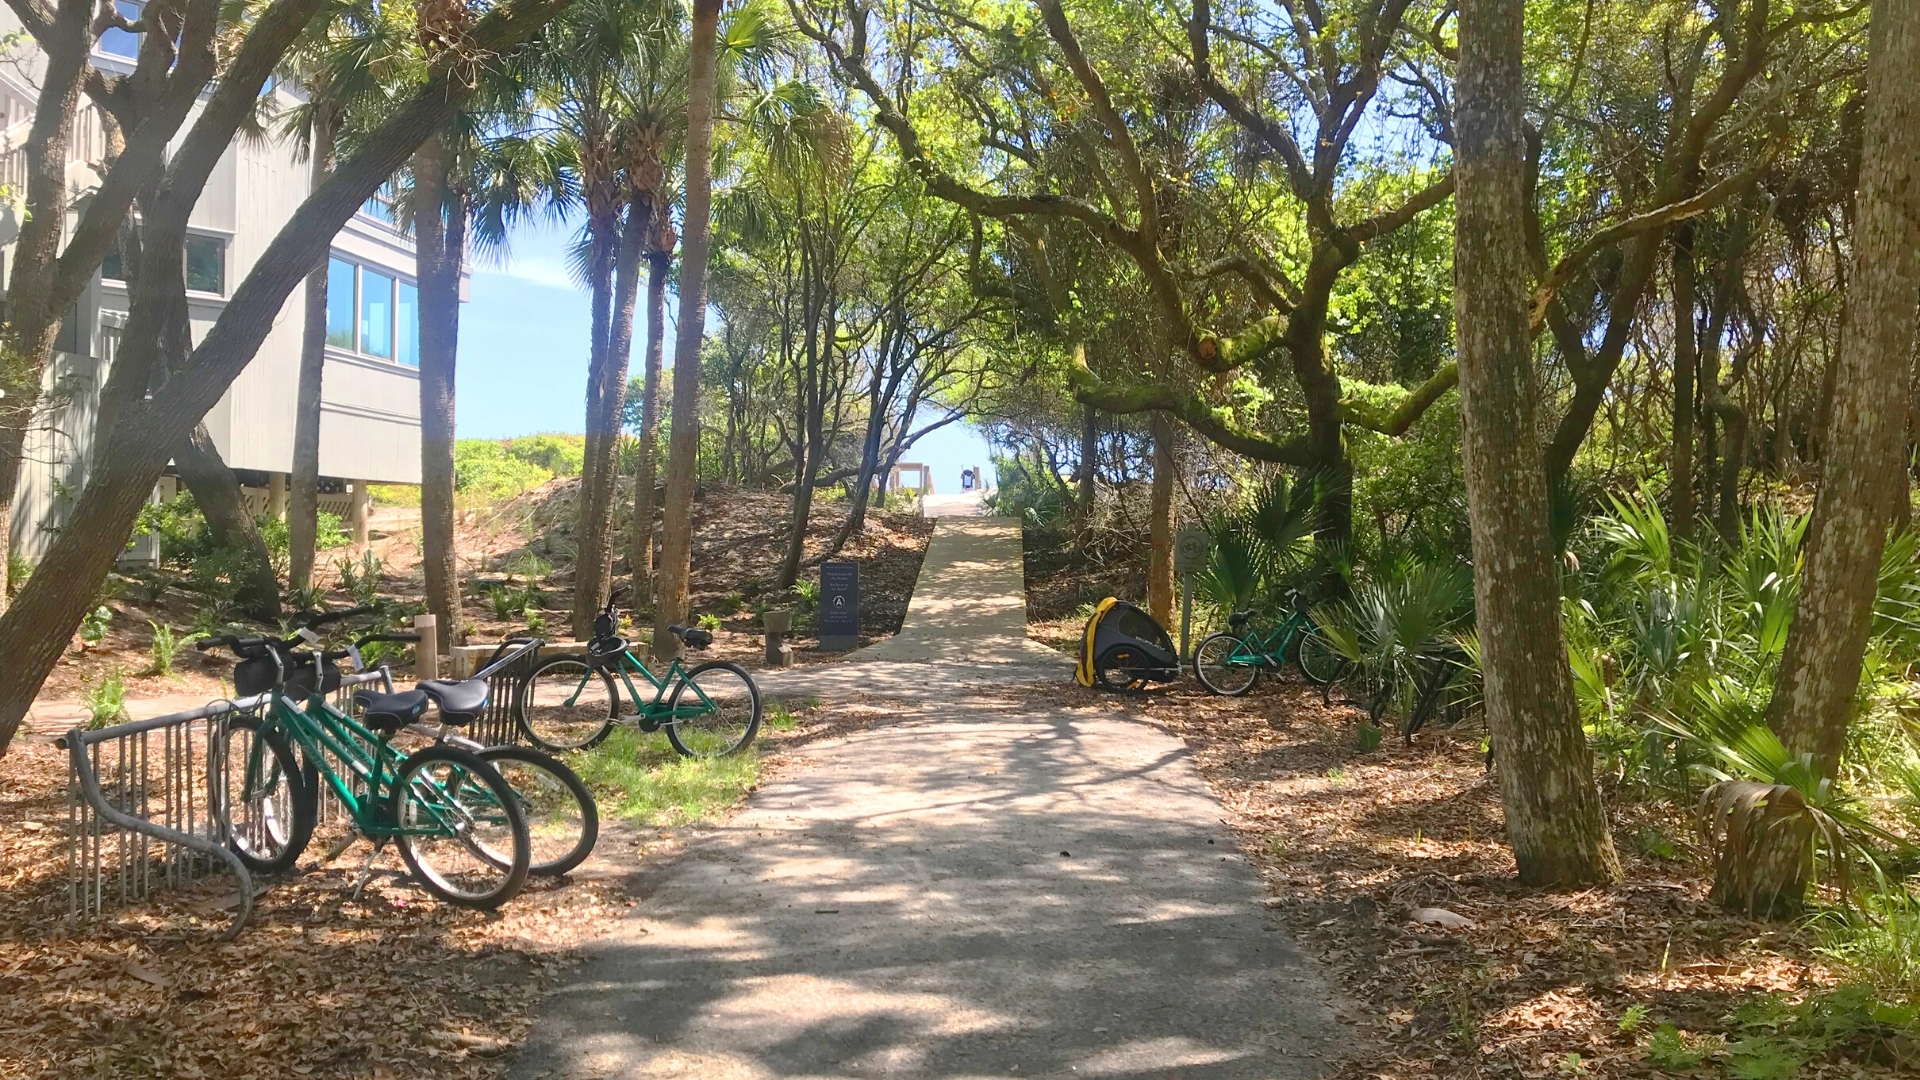 Bike Area near Kiawah Island Boardwalk